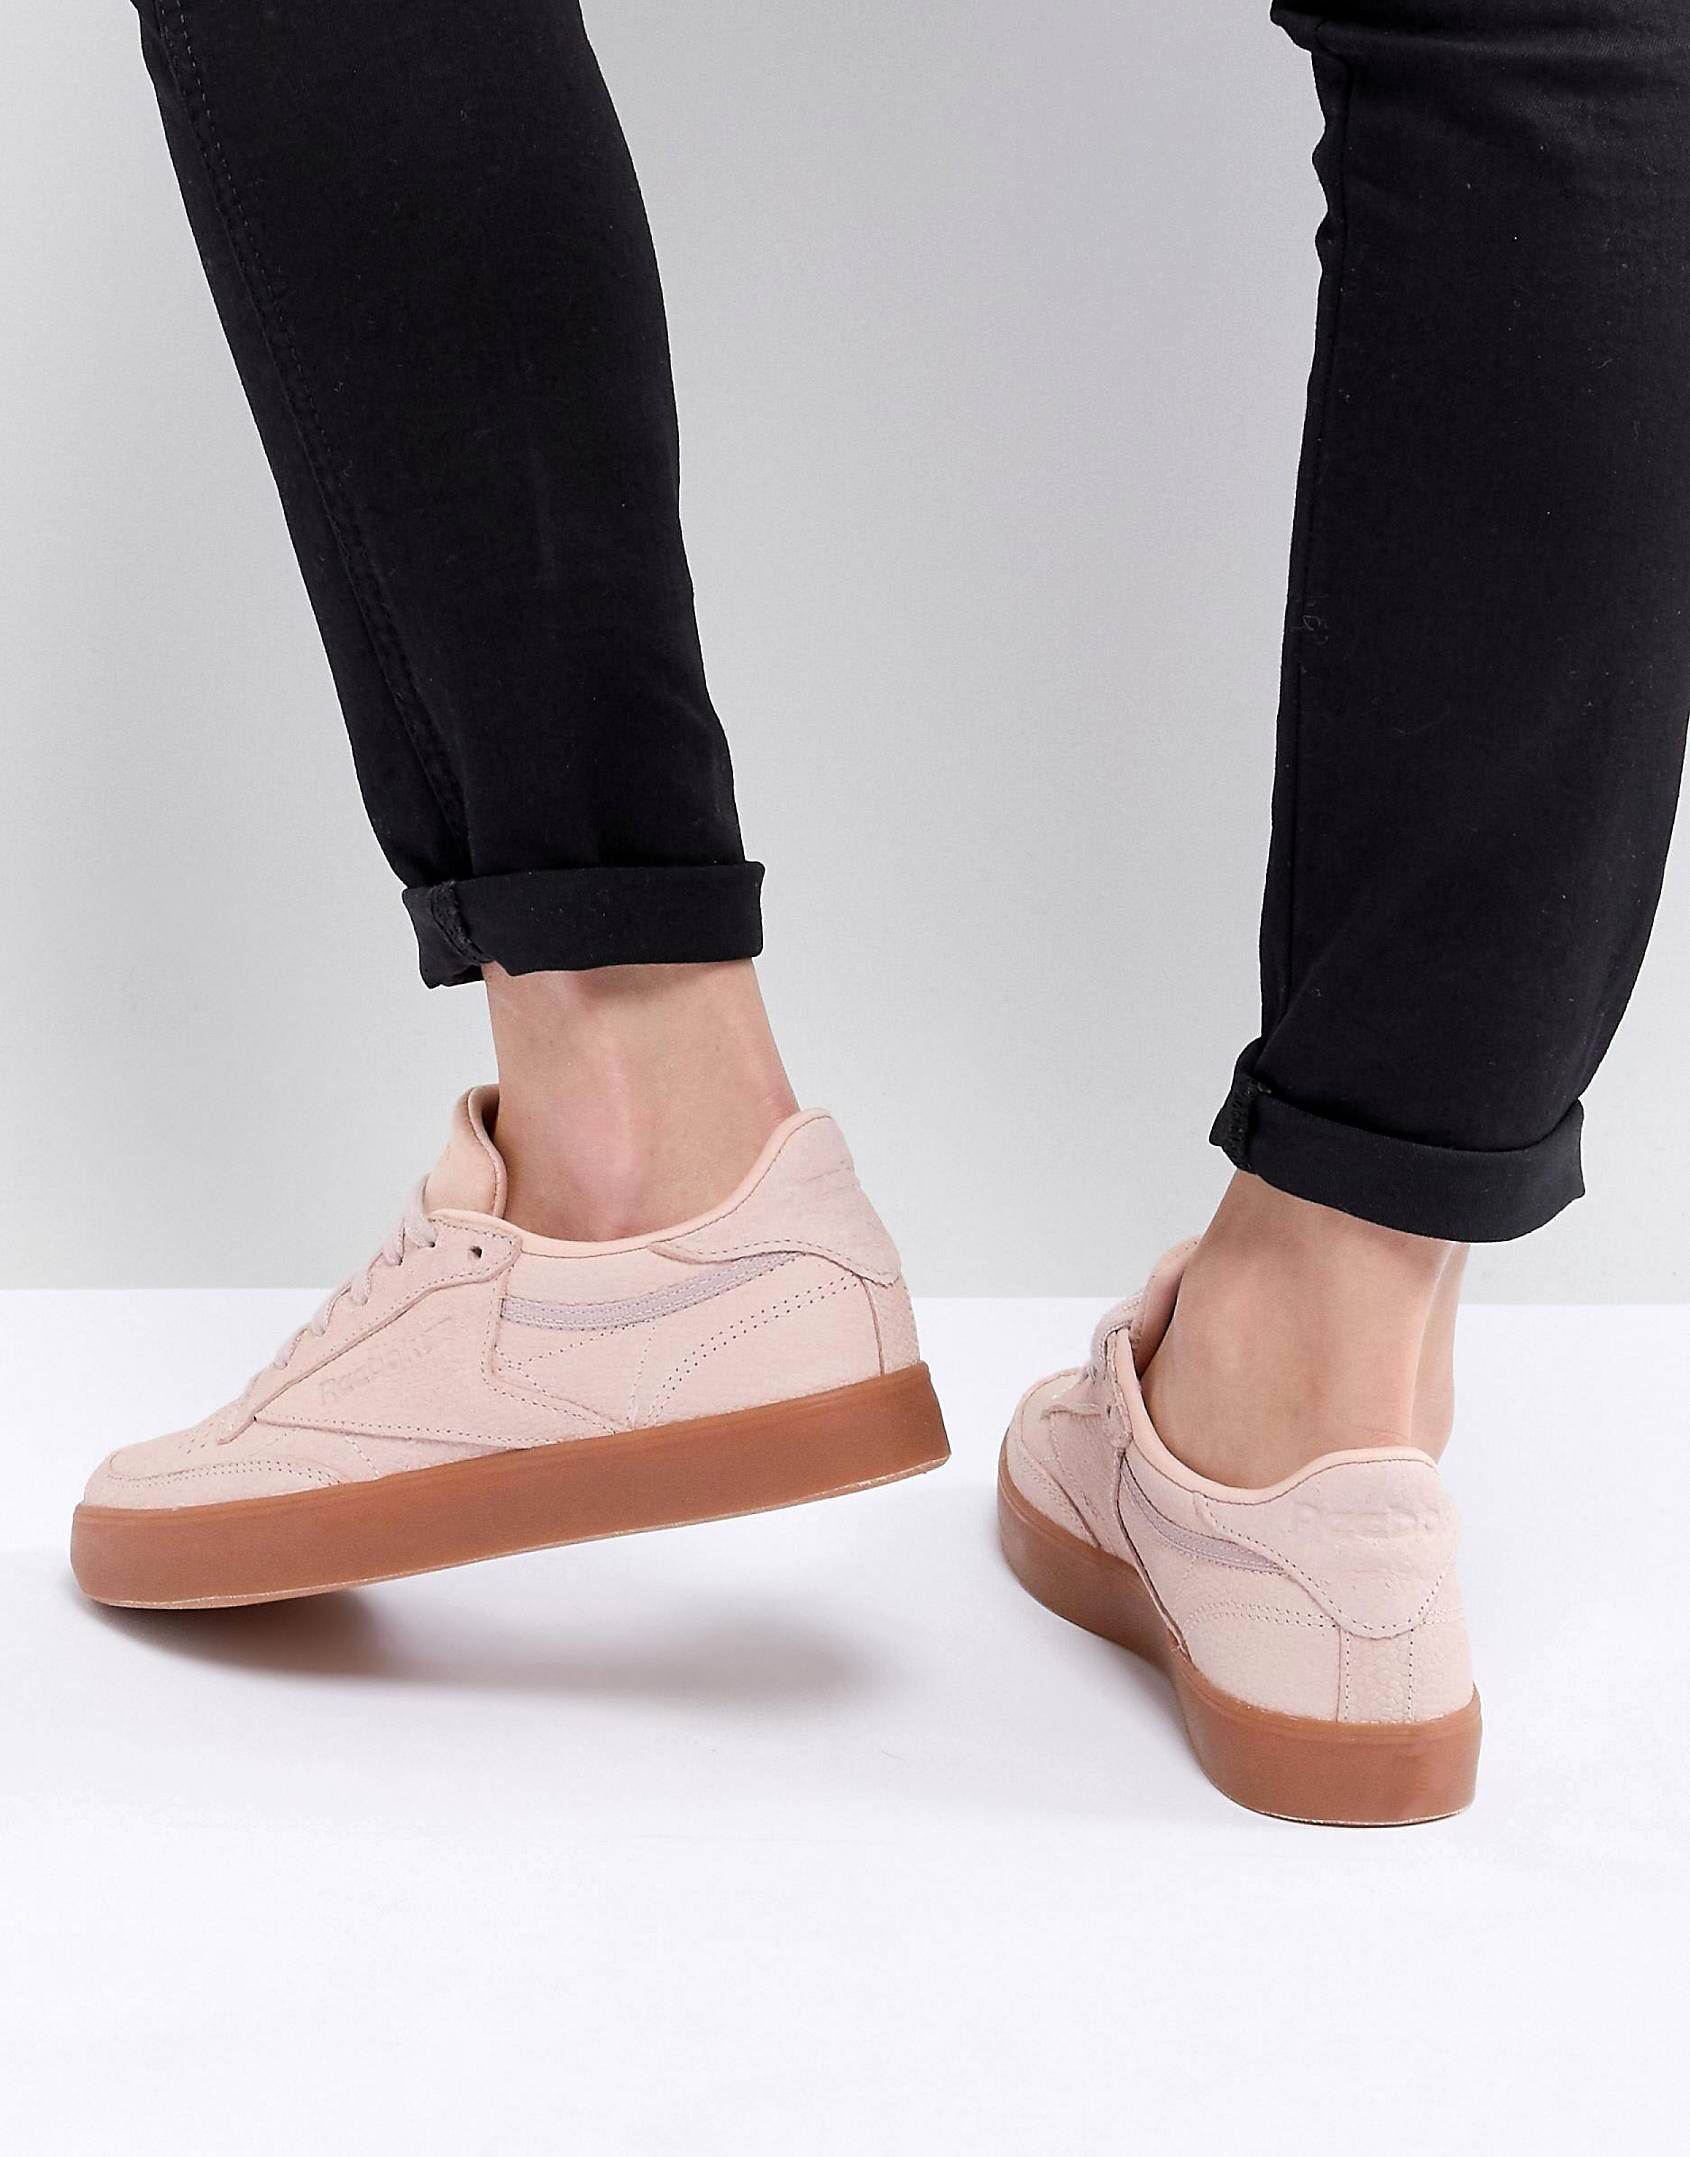 112a1830972 Just when I thought I didn t need something new from ASOS